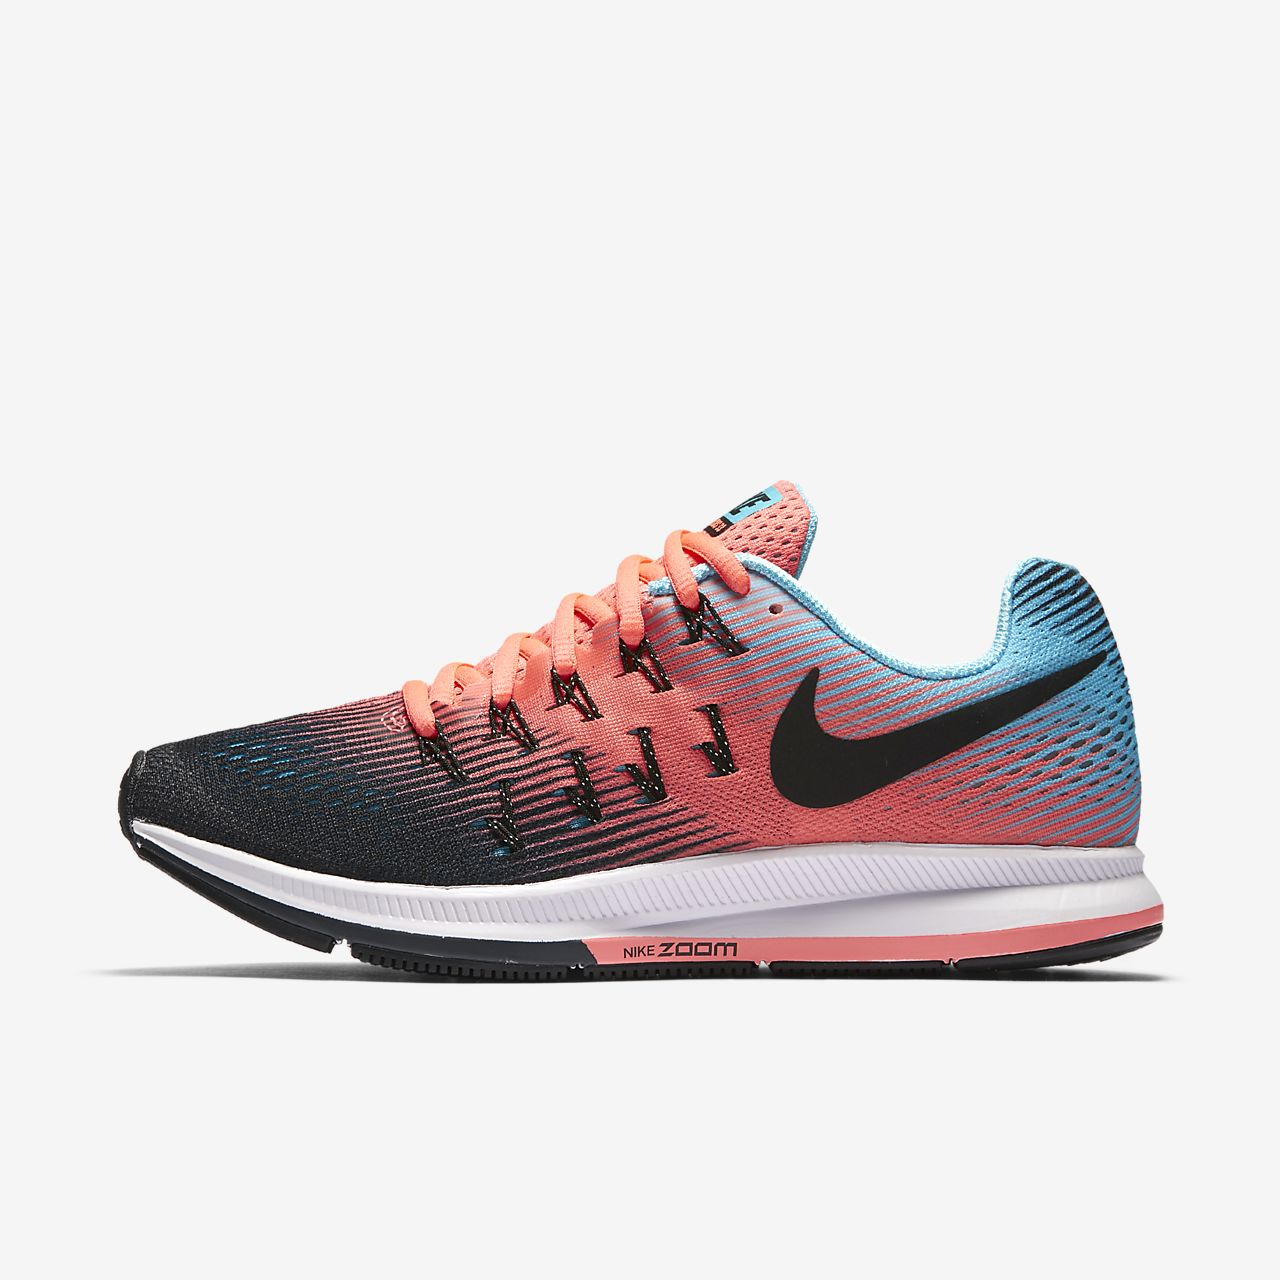 air zoom pegasus 33